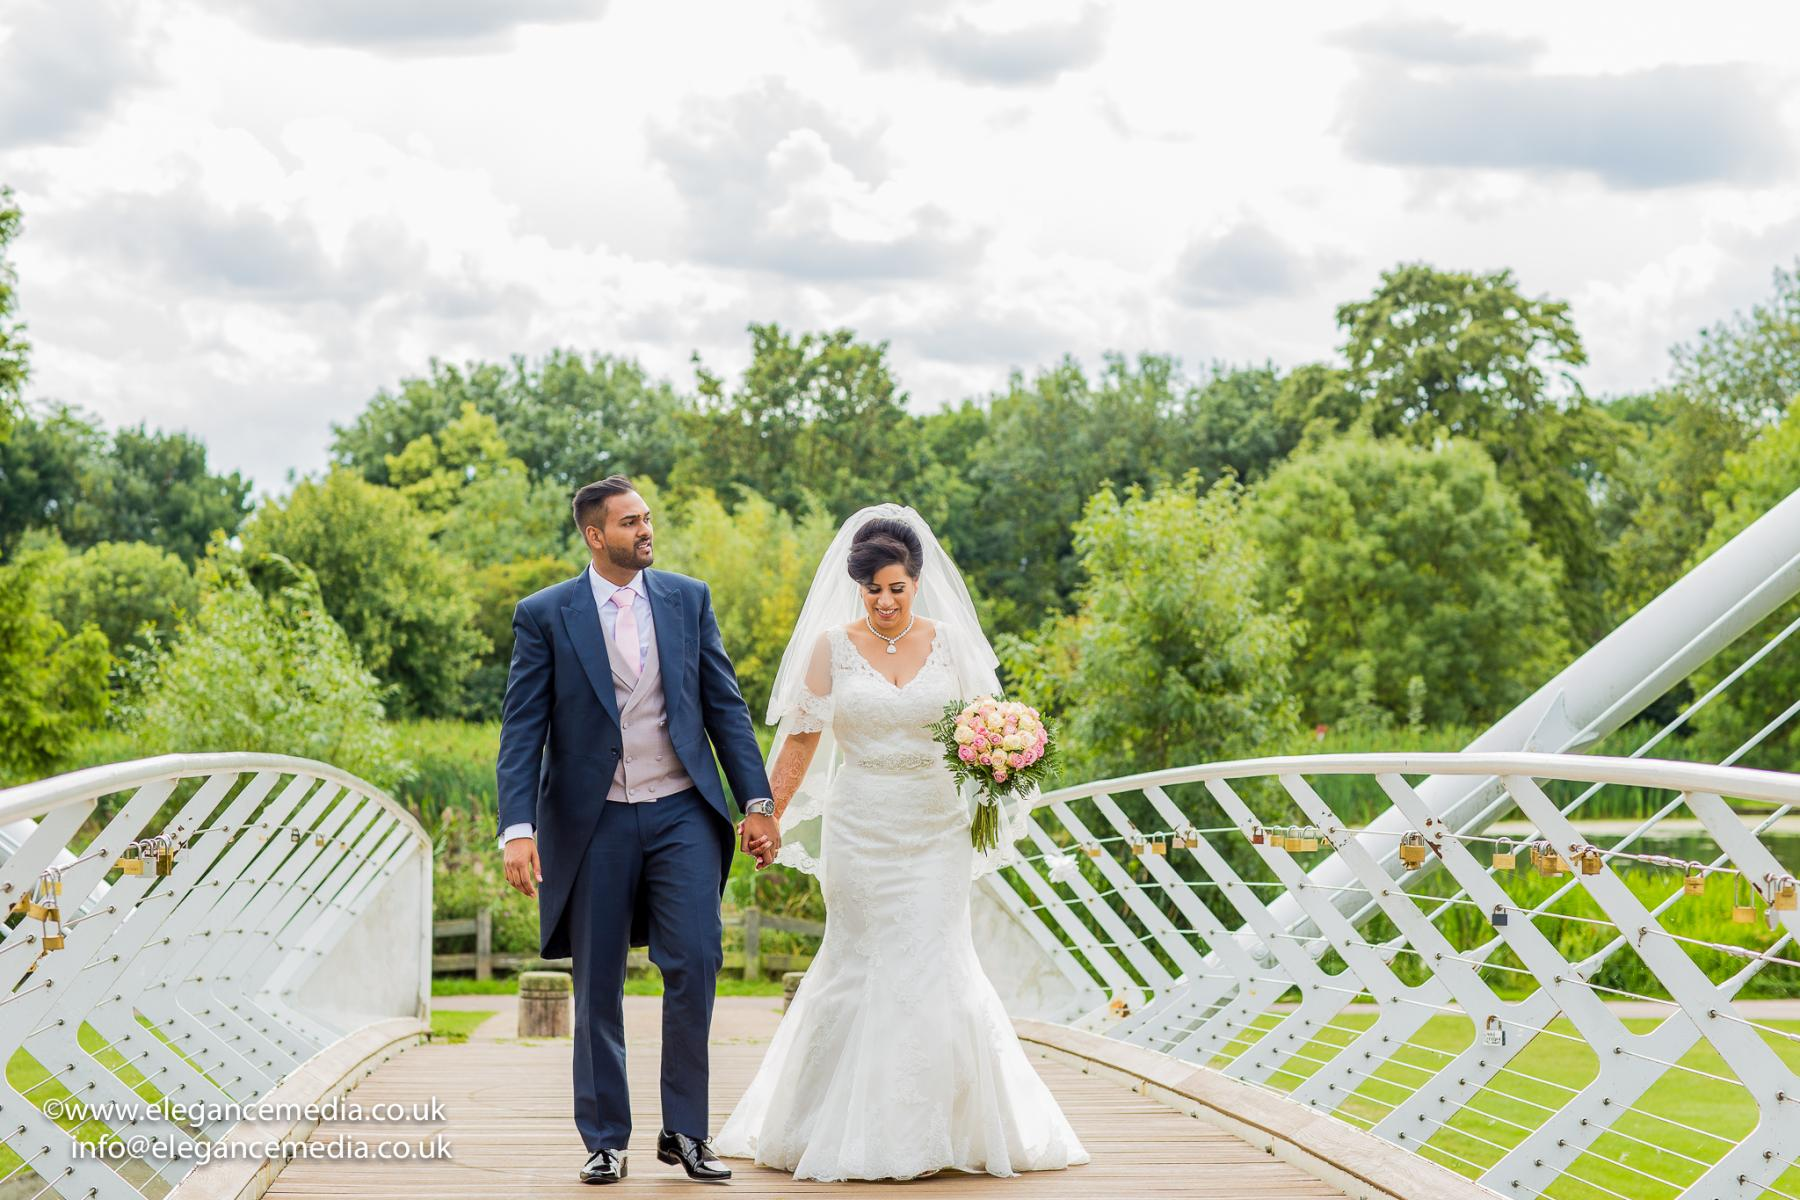 wedding photography, asian wedding photography, wedding photography london